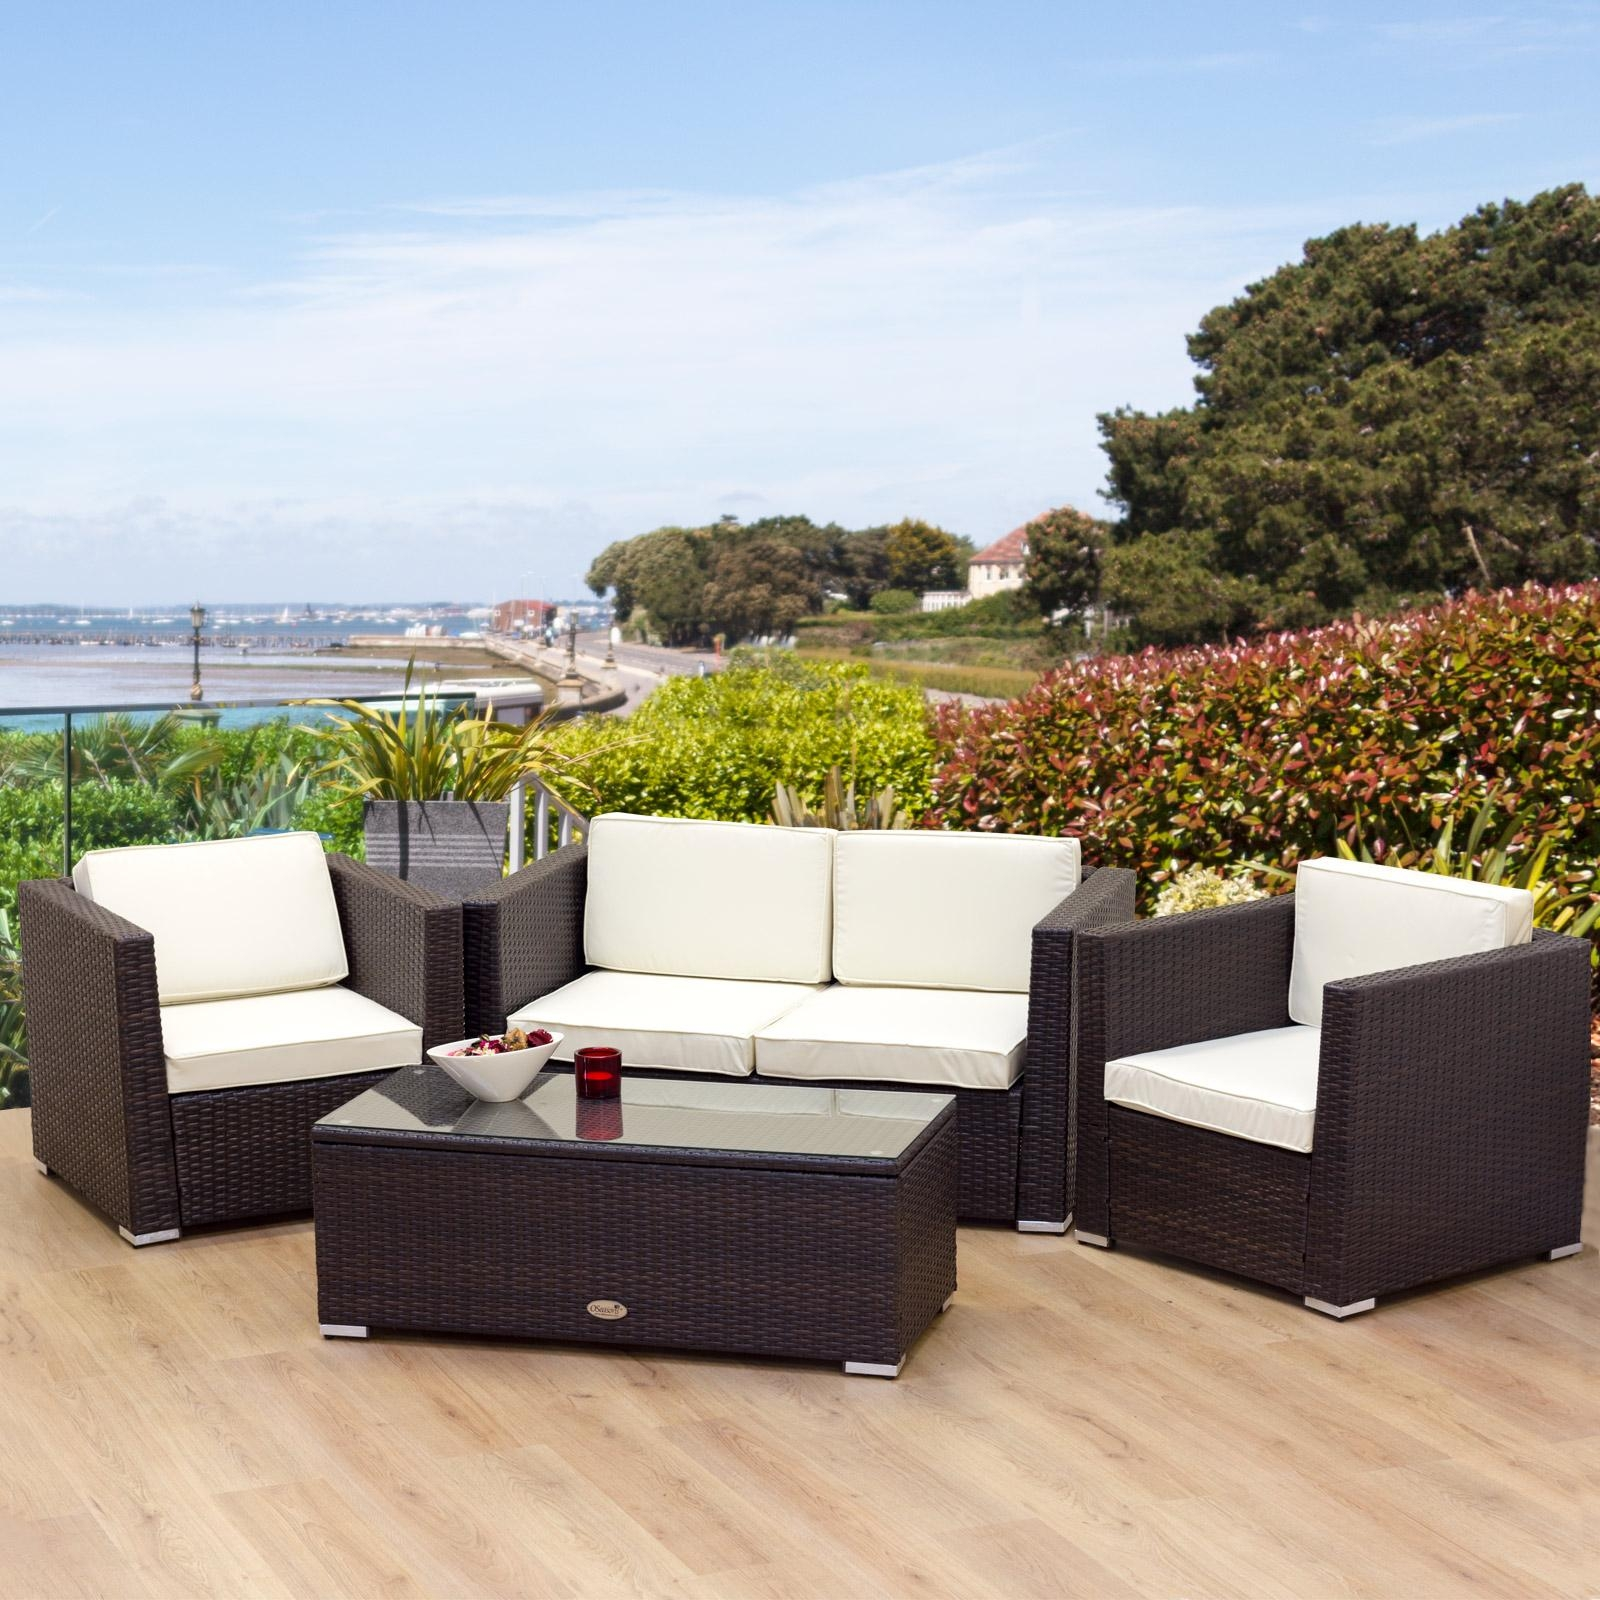 Awesome Rattan Garden Furniture – Hgnv Inside Modern Rattan Sofas (View 13 of 23)